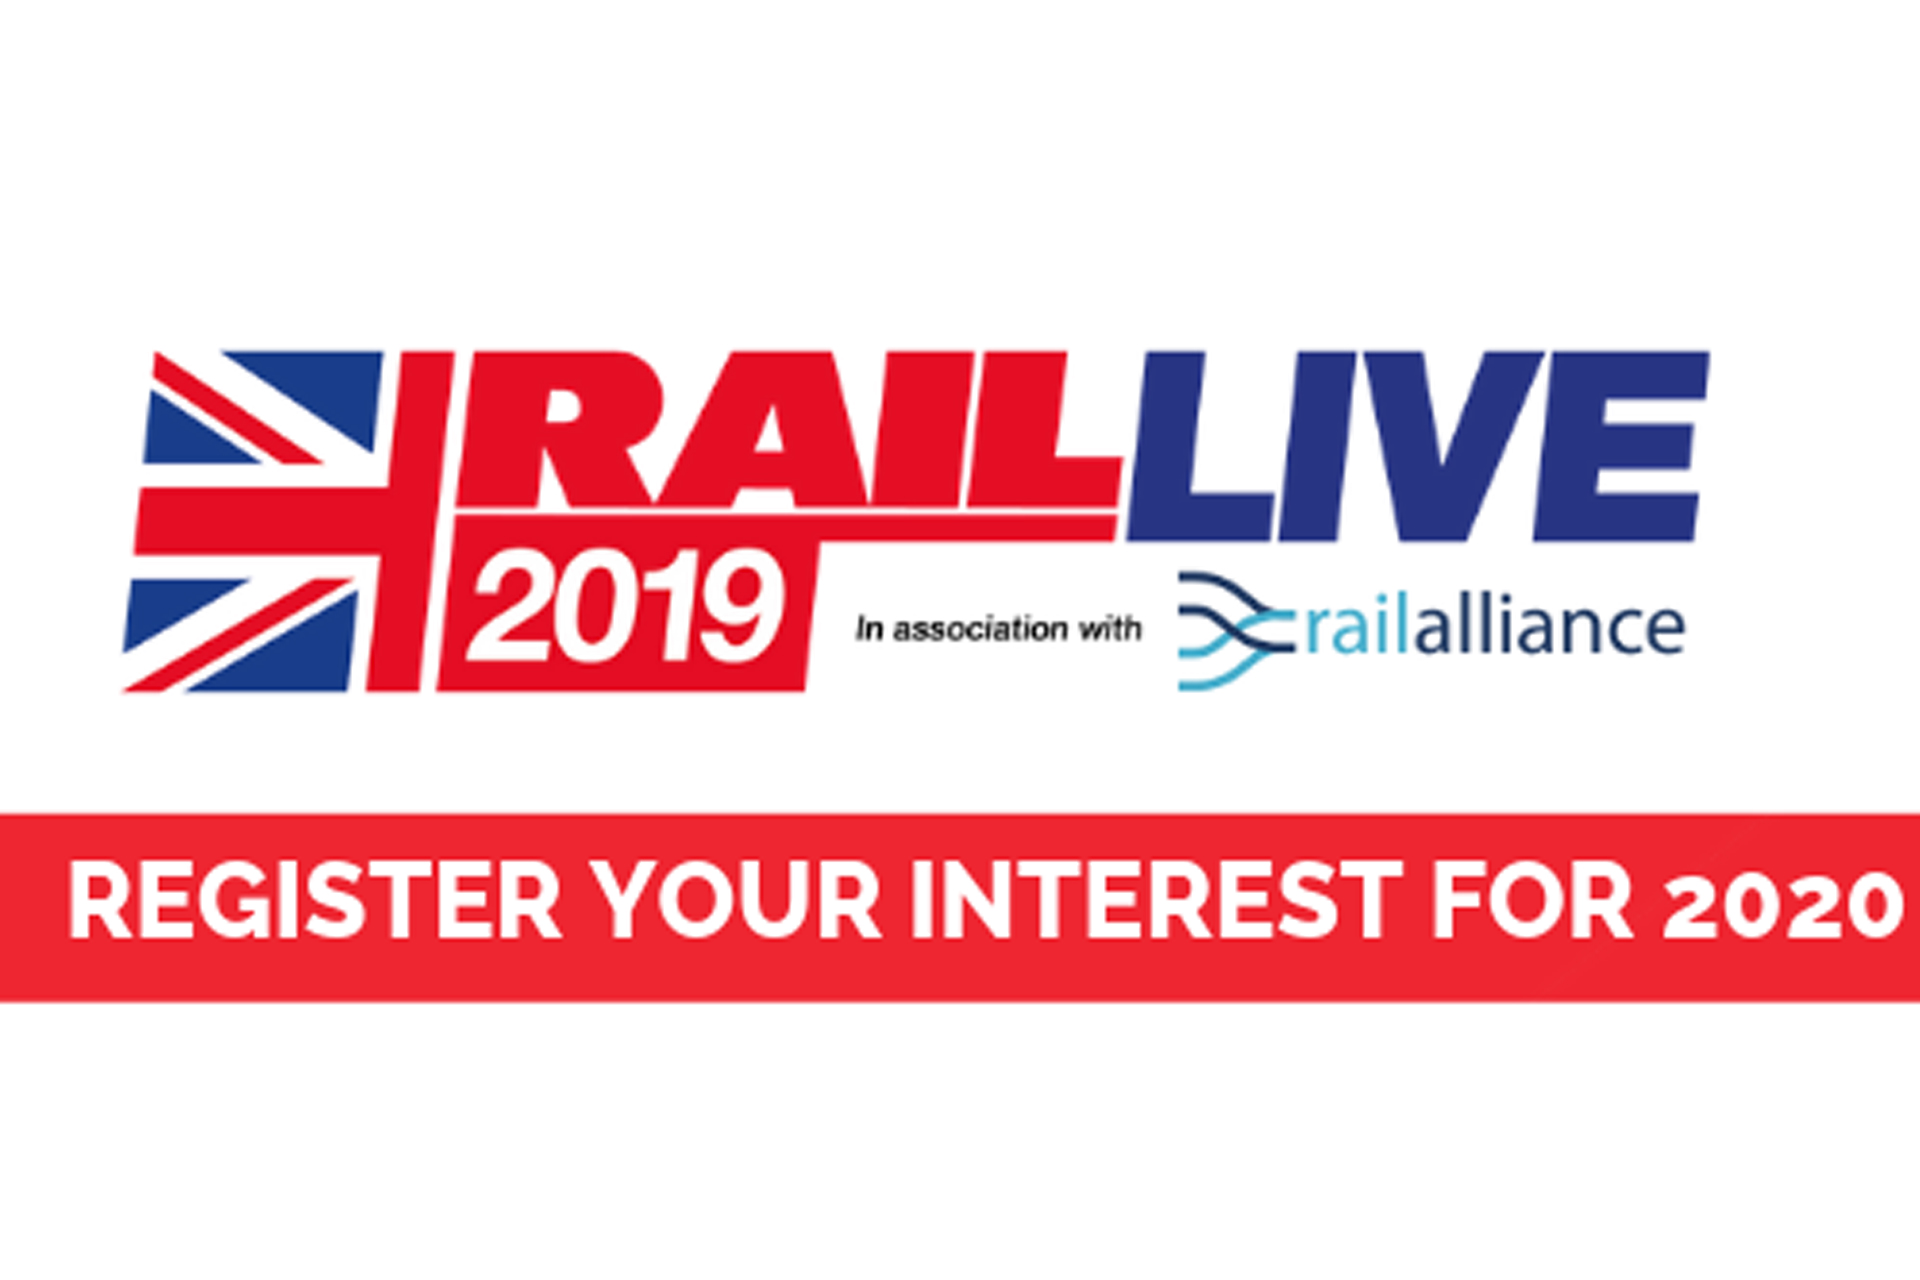 Halo Set For Rail Live 2019 Launch